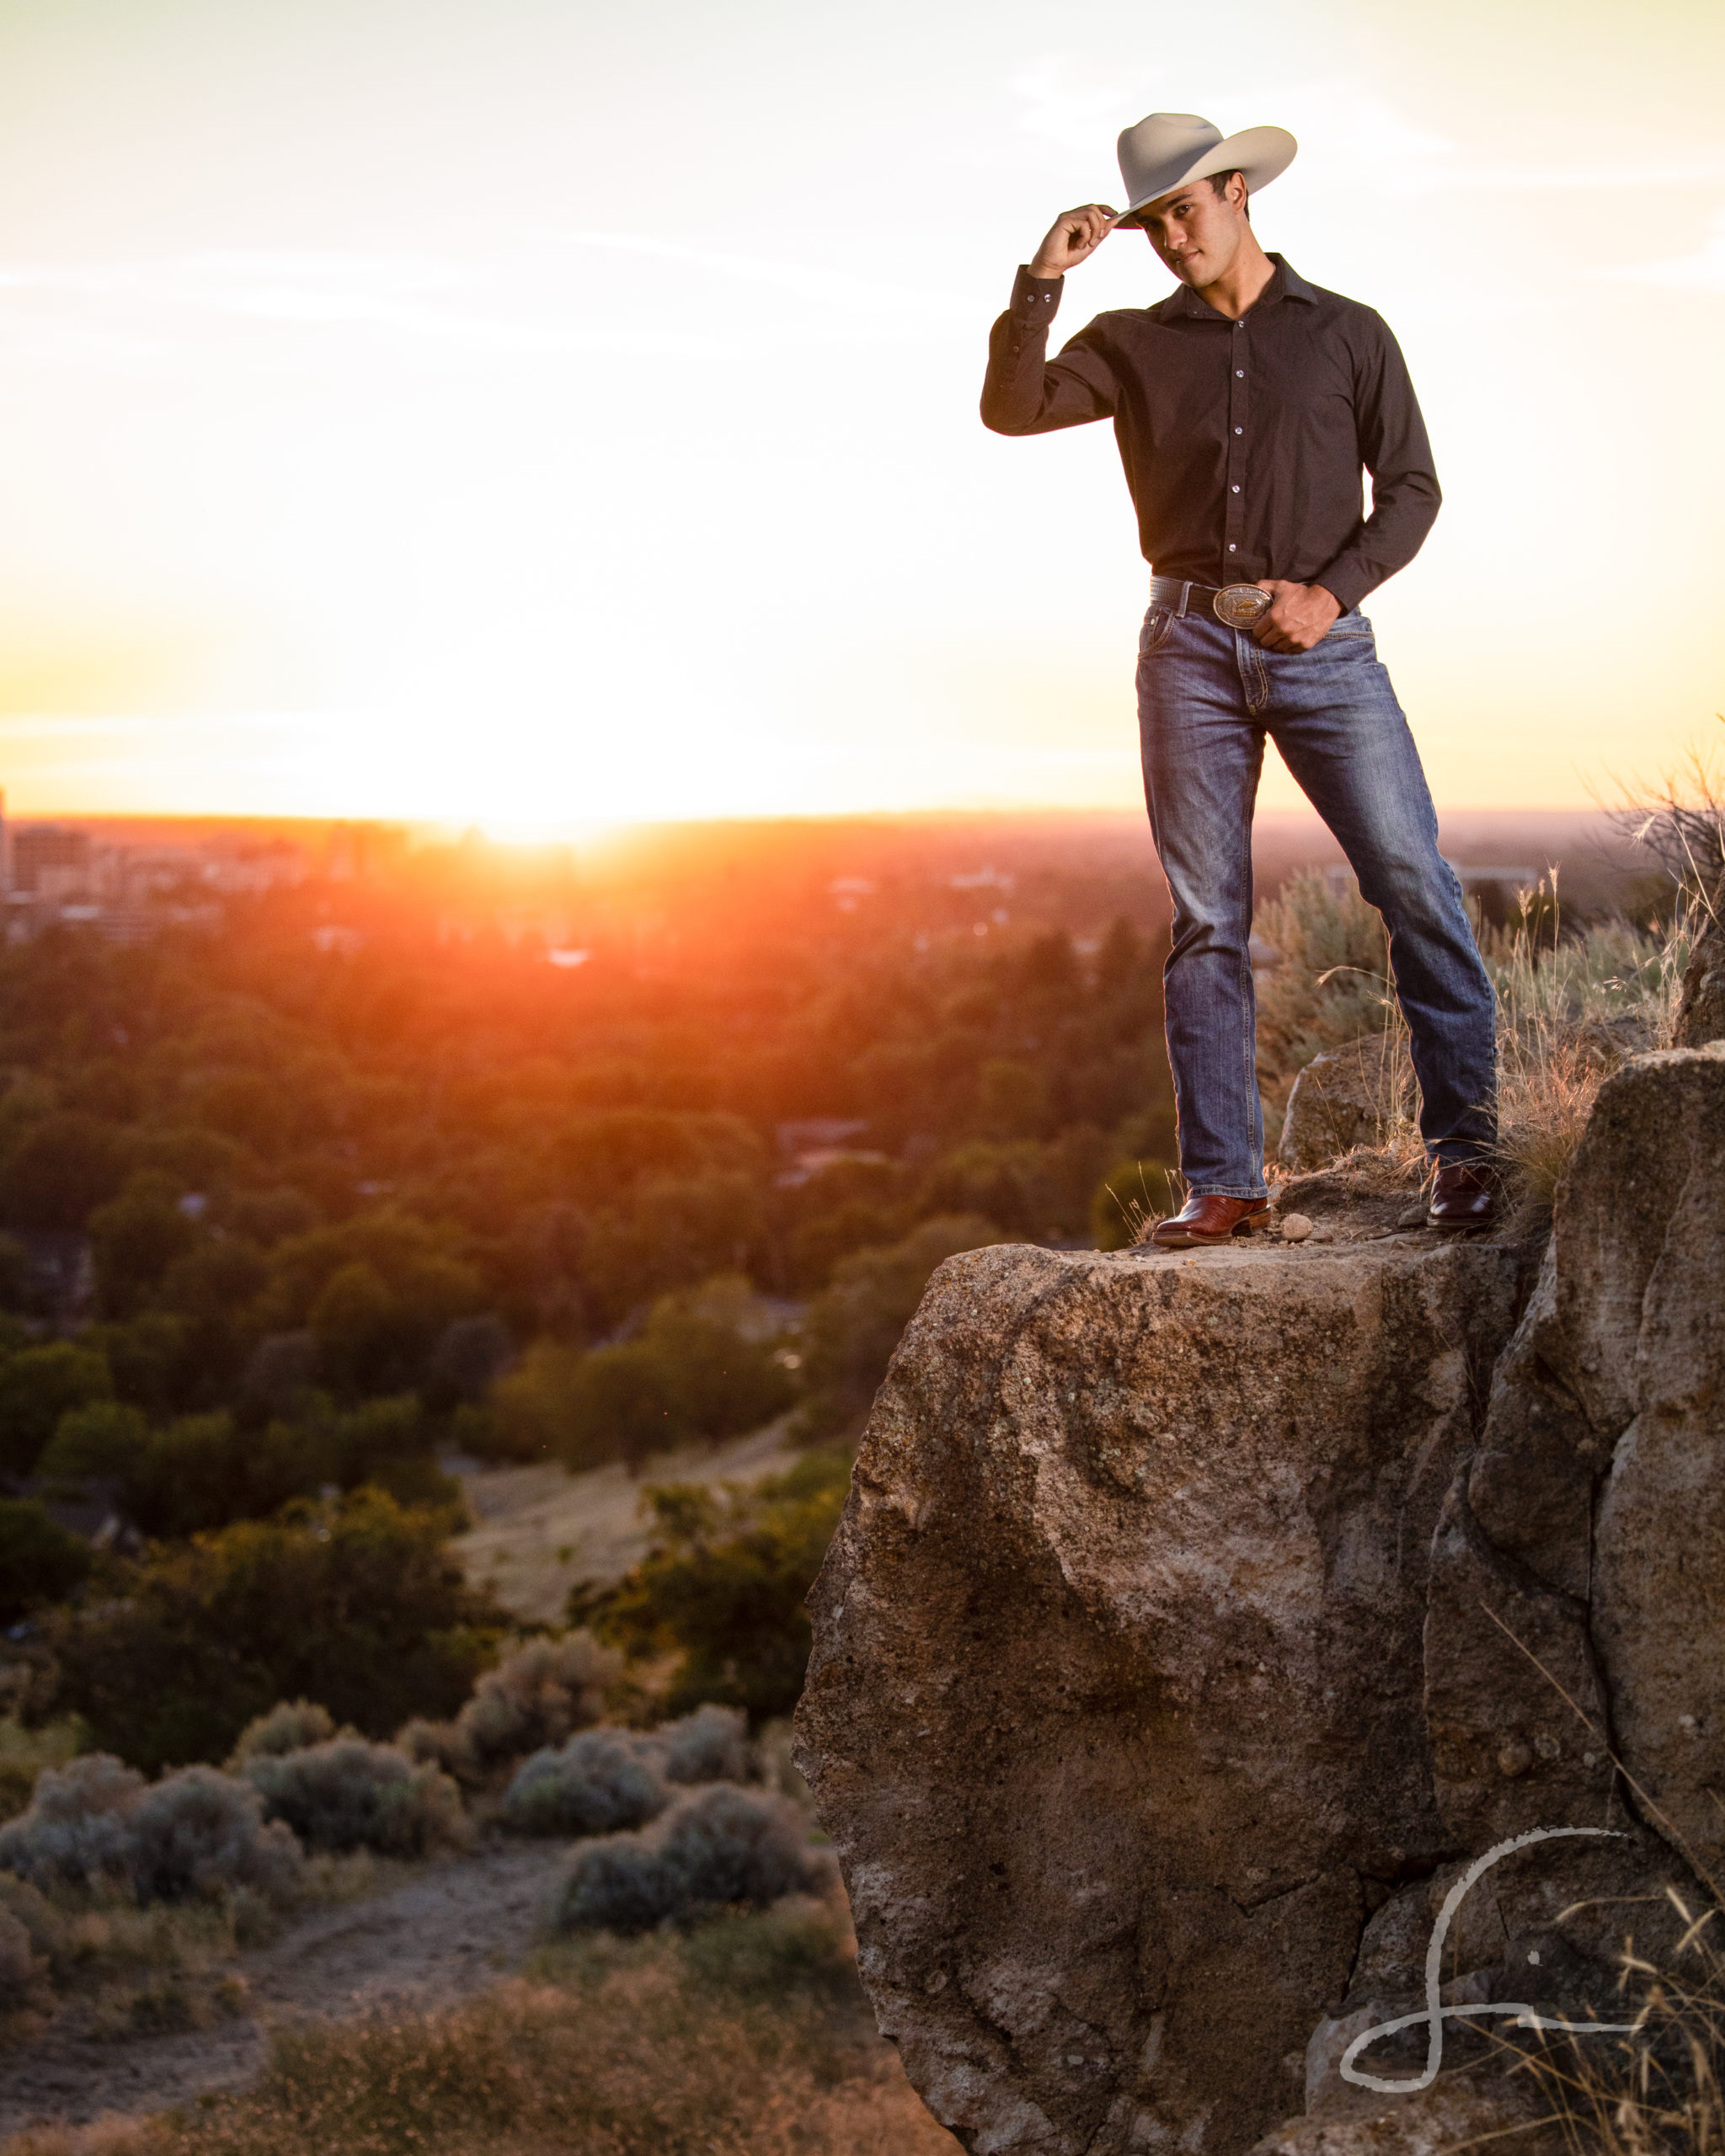 young man on the edge of a cliff over looking the city at sunset in a cowboy hat